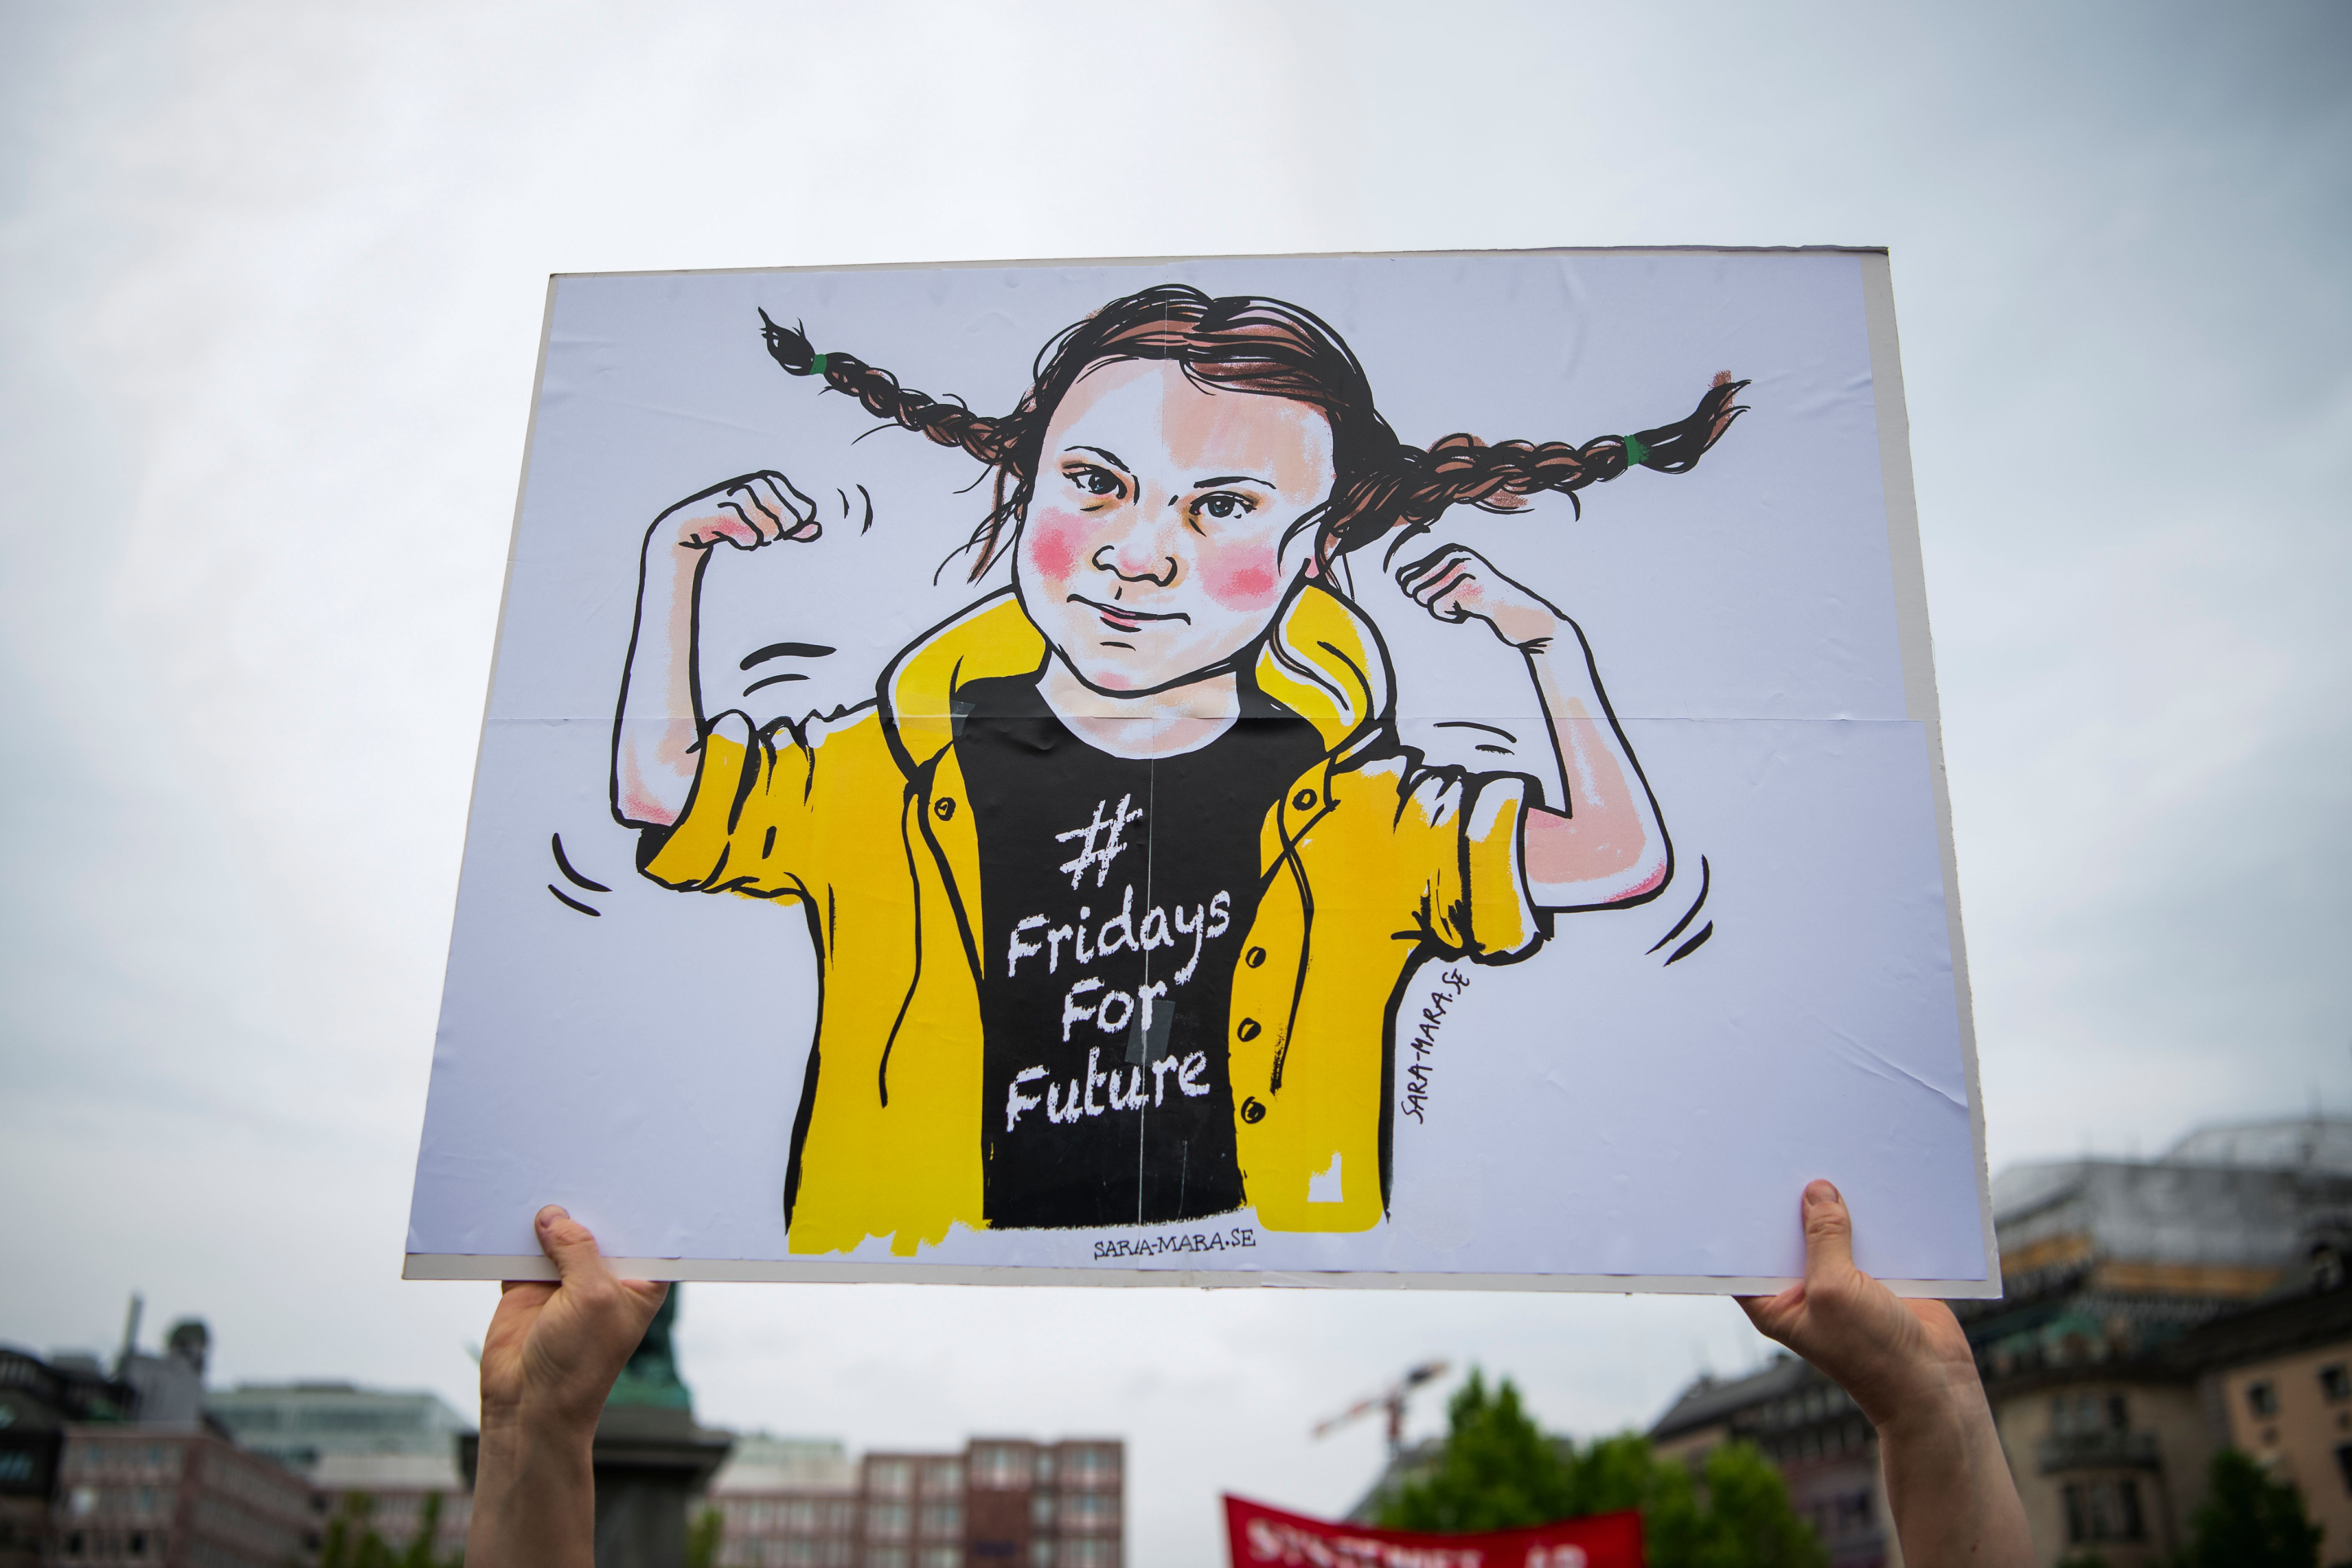 In Photos Students Lead Climate Change Protests Across The